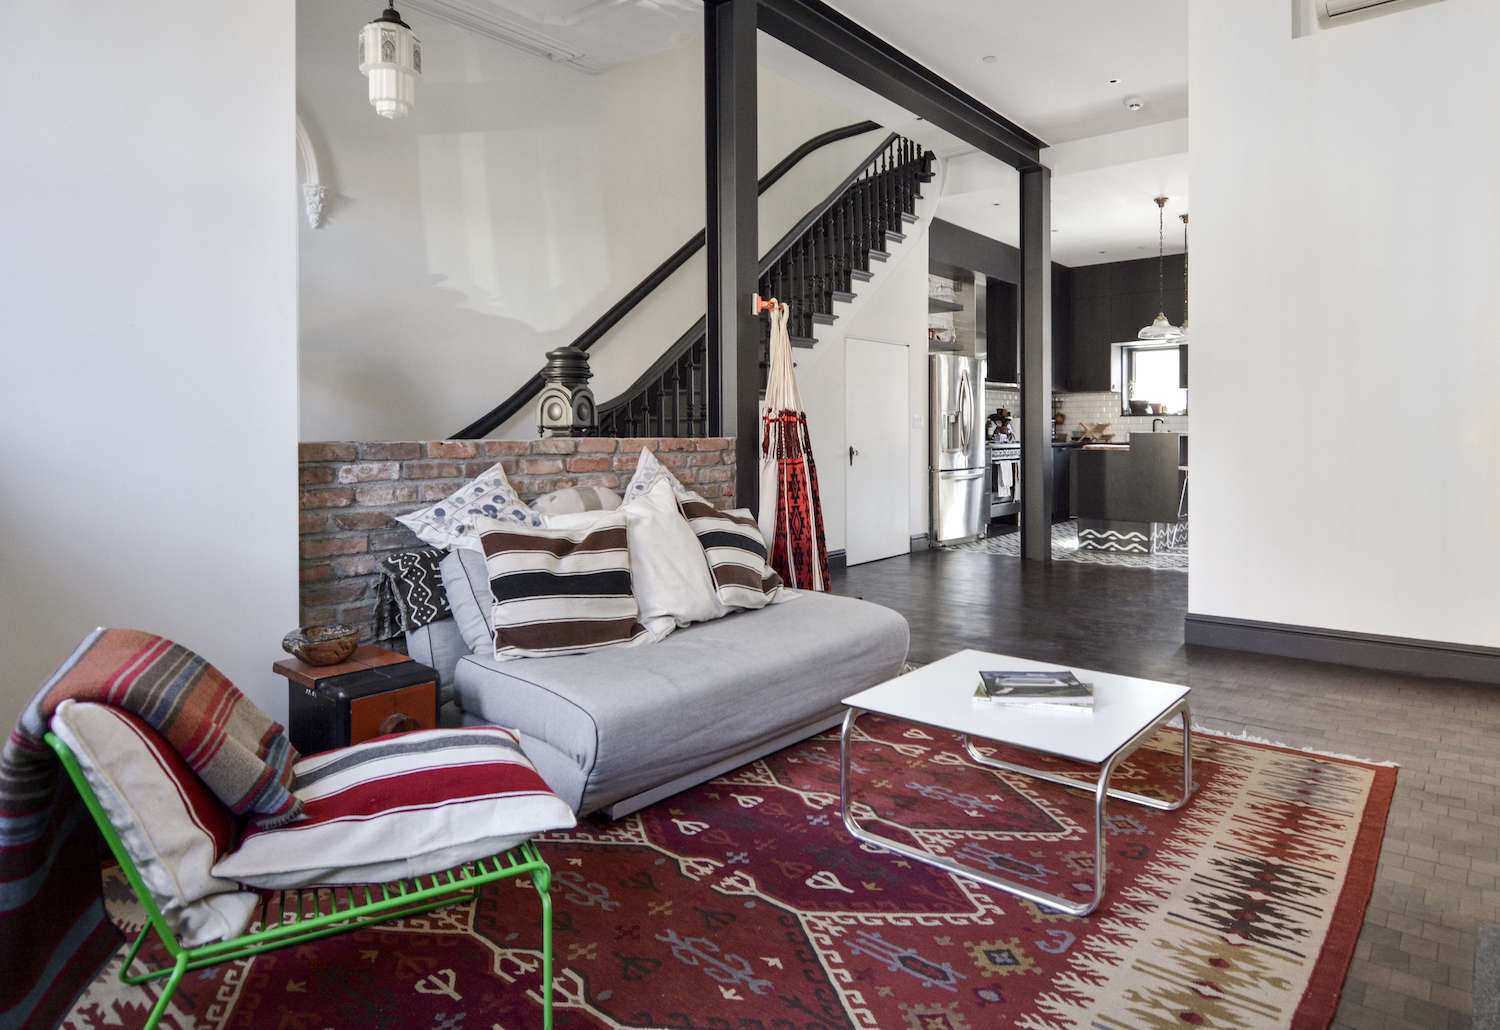 architects gregory merkel and catalina rojas's remodeled brooklyn townhouse | r 10